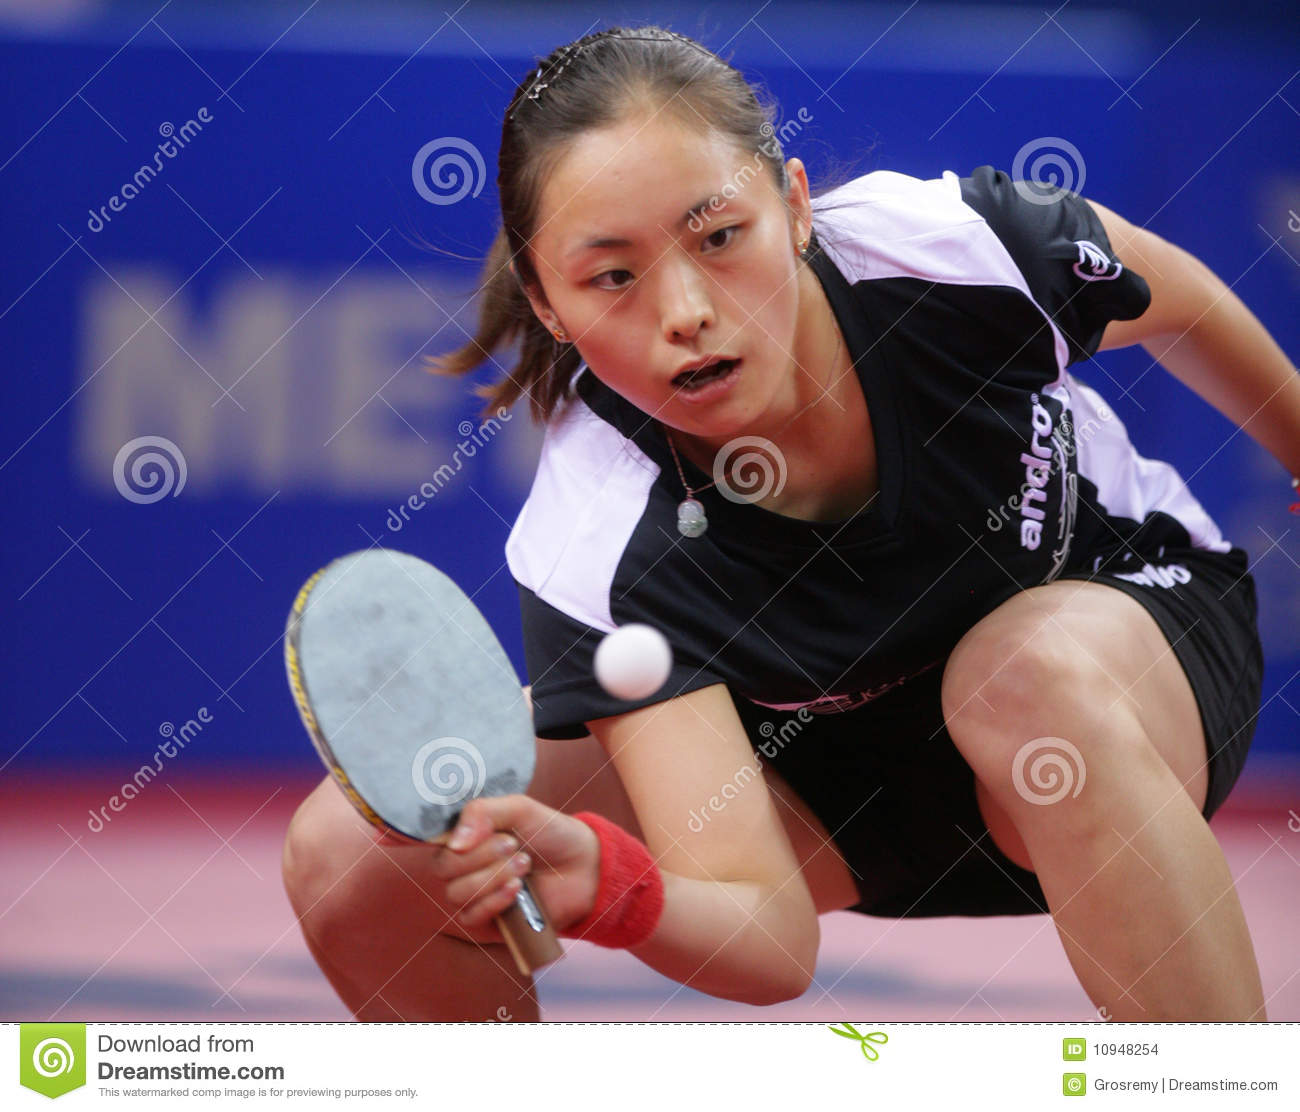 Forum on this topic: Michelle Clunie, li-qian/